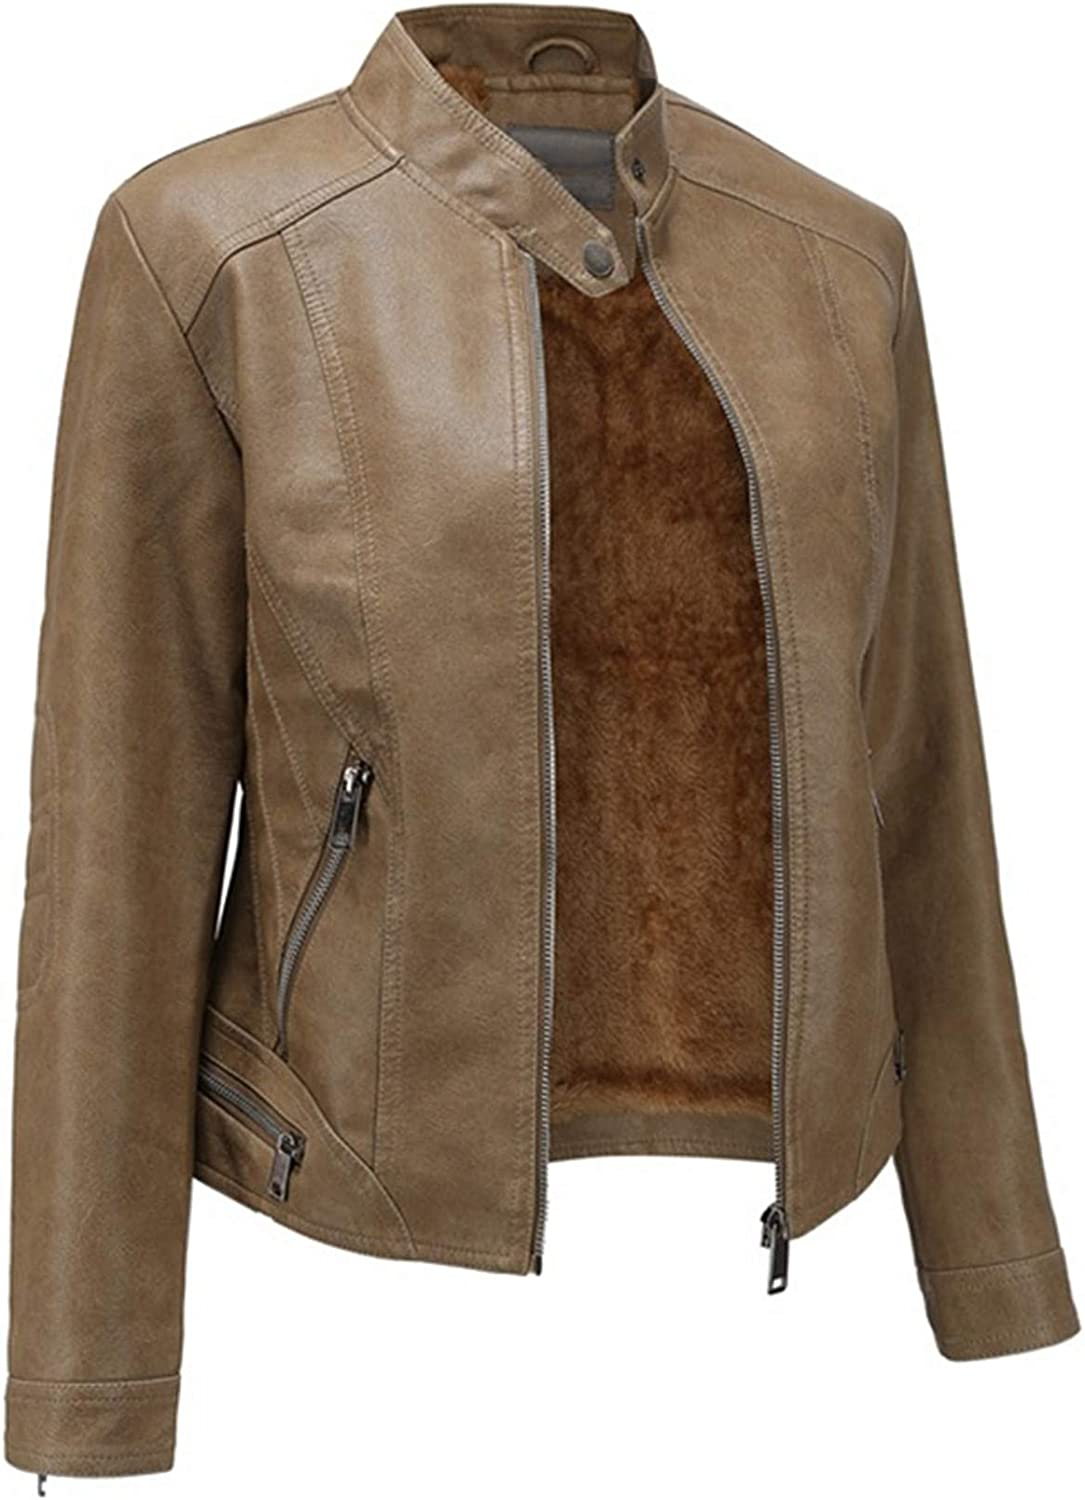 EverNight Womens Faux Leather Jackets,Moto Biker Slim Fit Short Casual Coats,Vintage Spring Fall Outwear,Brown,L